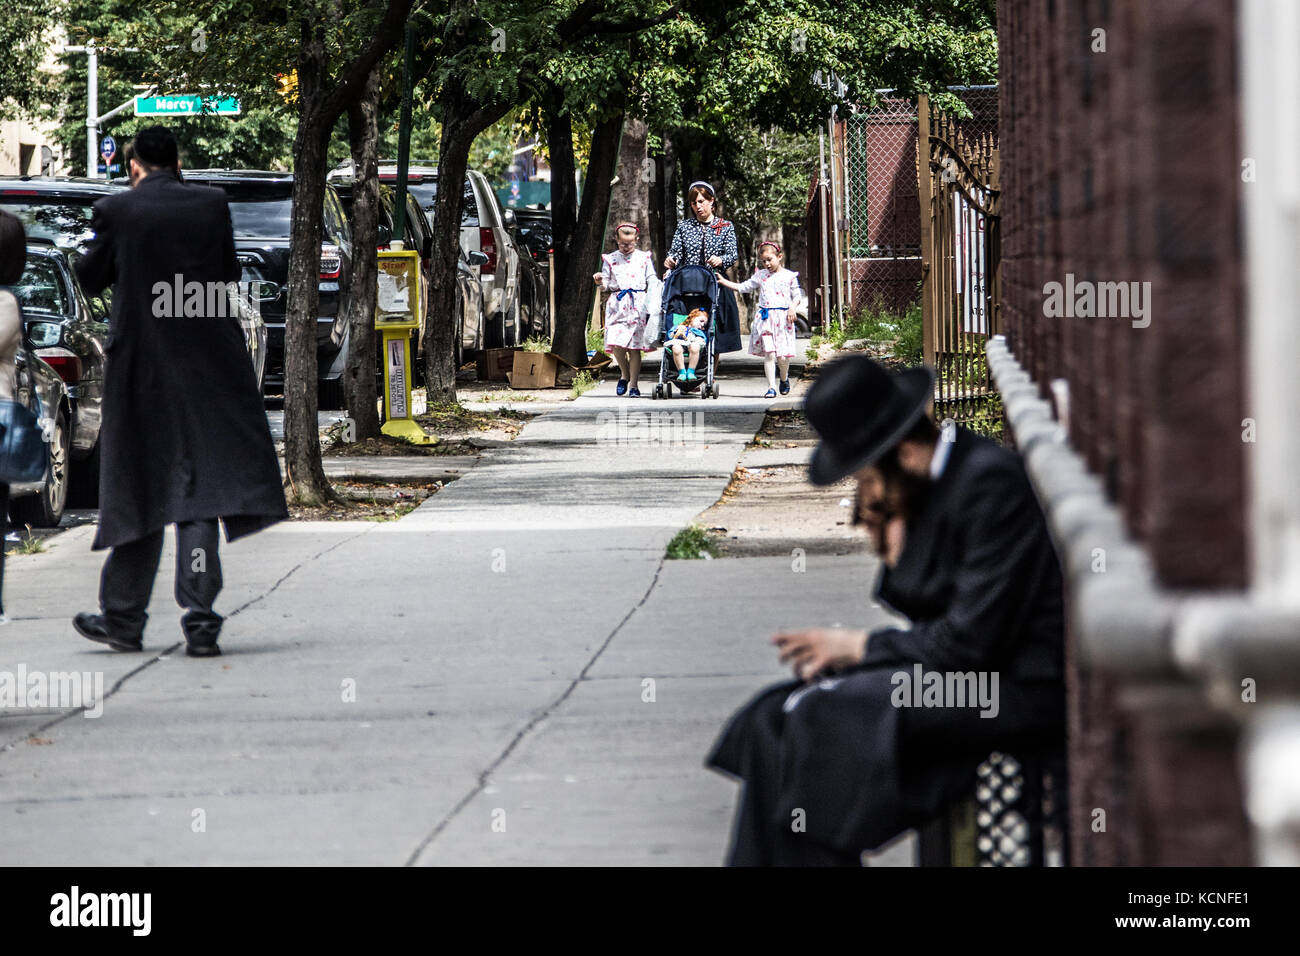 Conservative Jews in a predominantly Jewish neighborhood in Brooklyn, New York City, USA - Stock Image